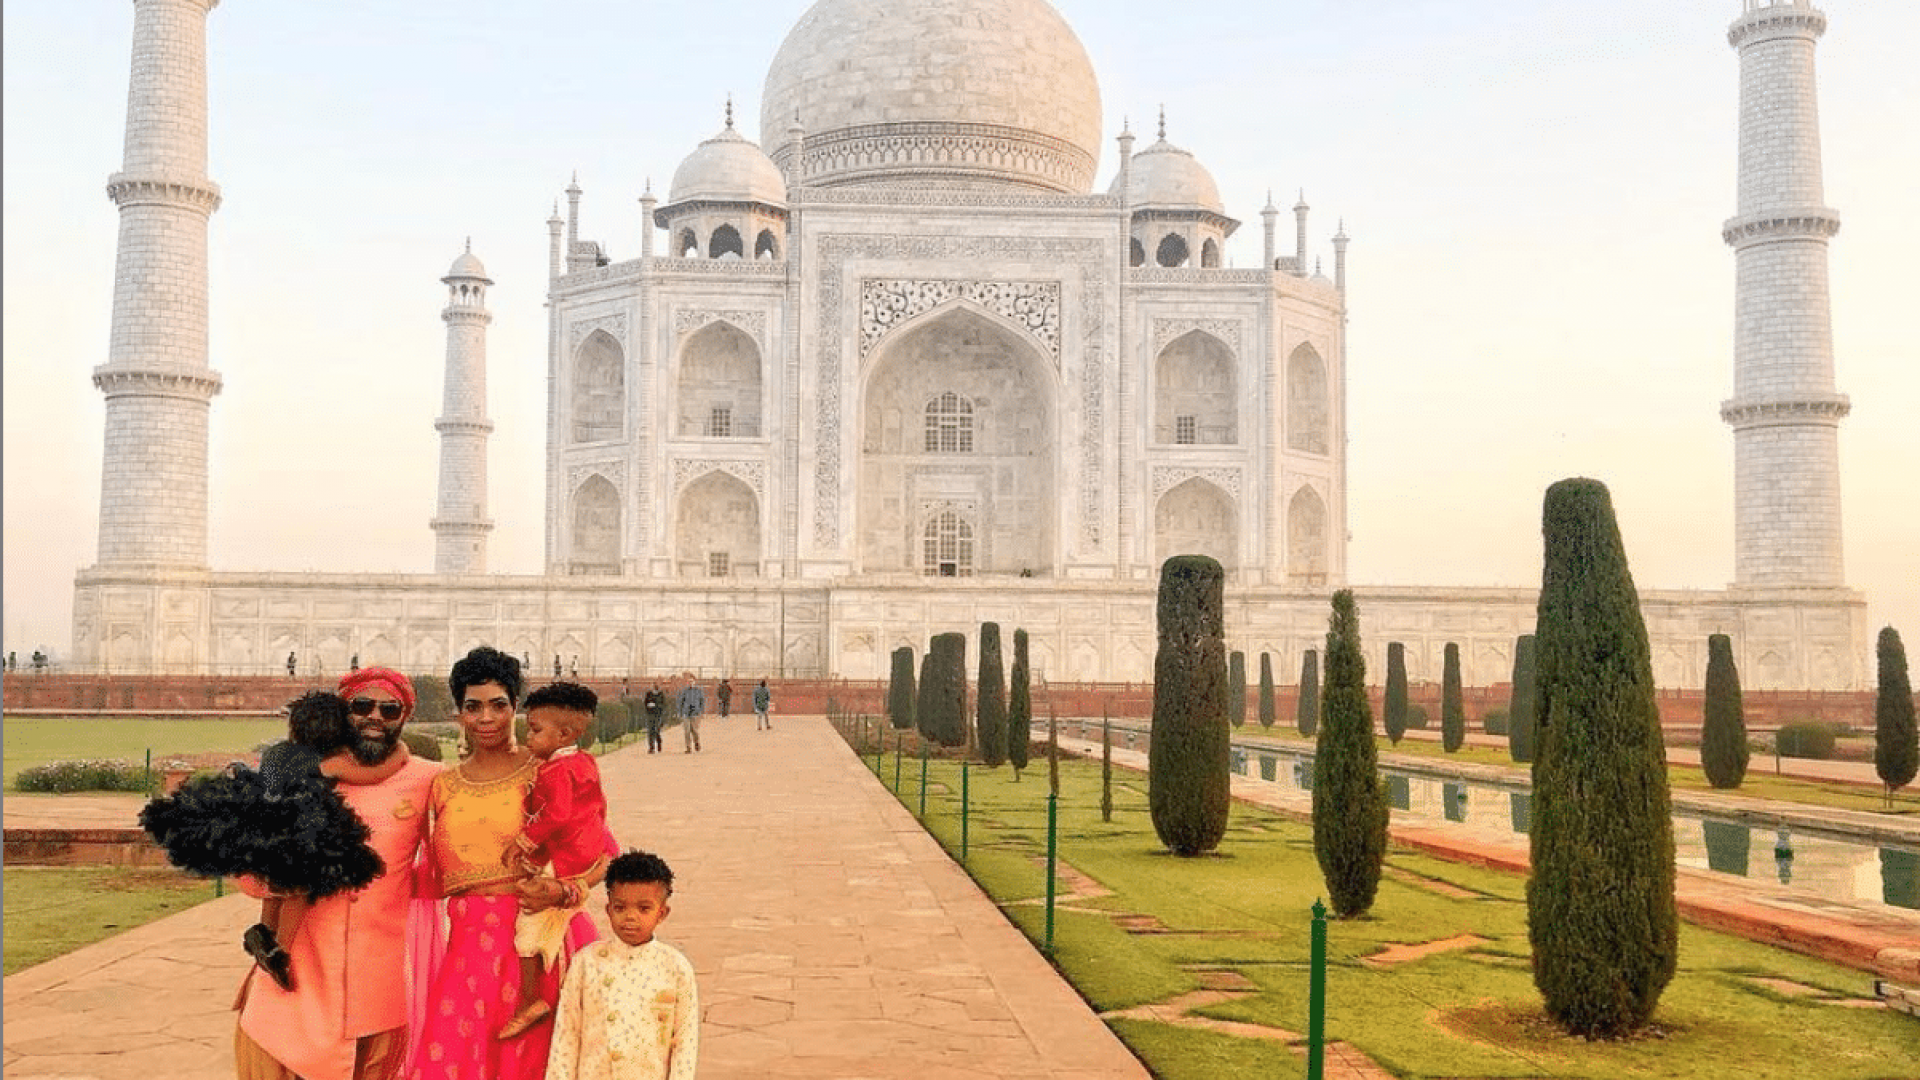 Black Travel Moment of the Day: We Love This Sweet Family Photo Opp At The Taj Mahal